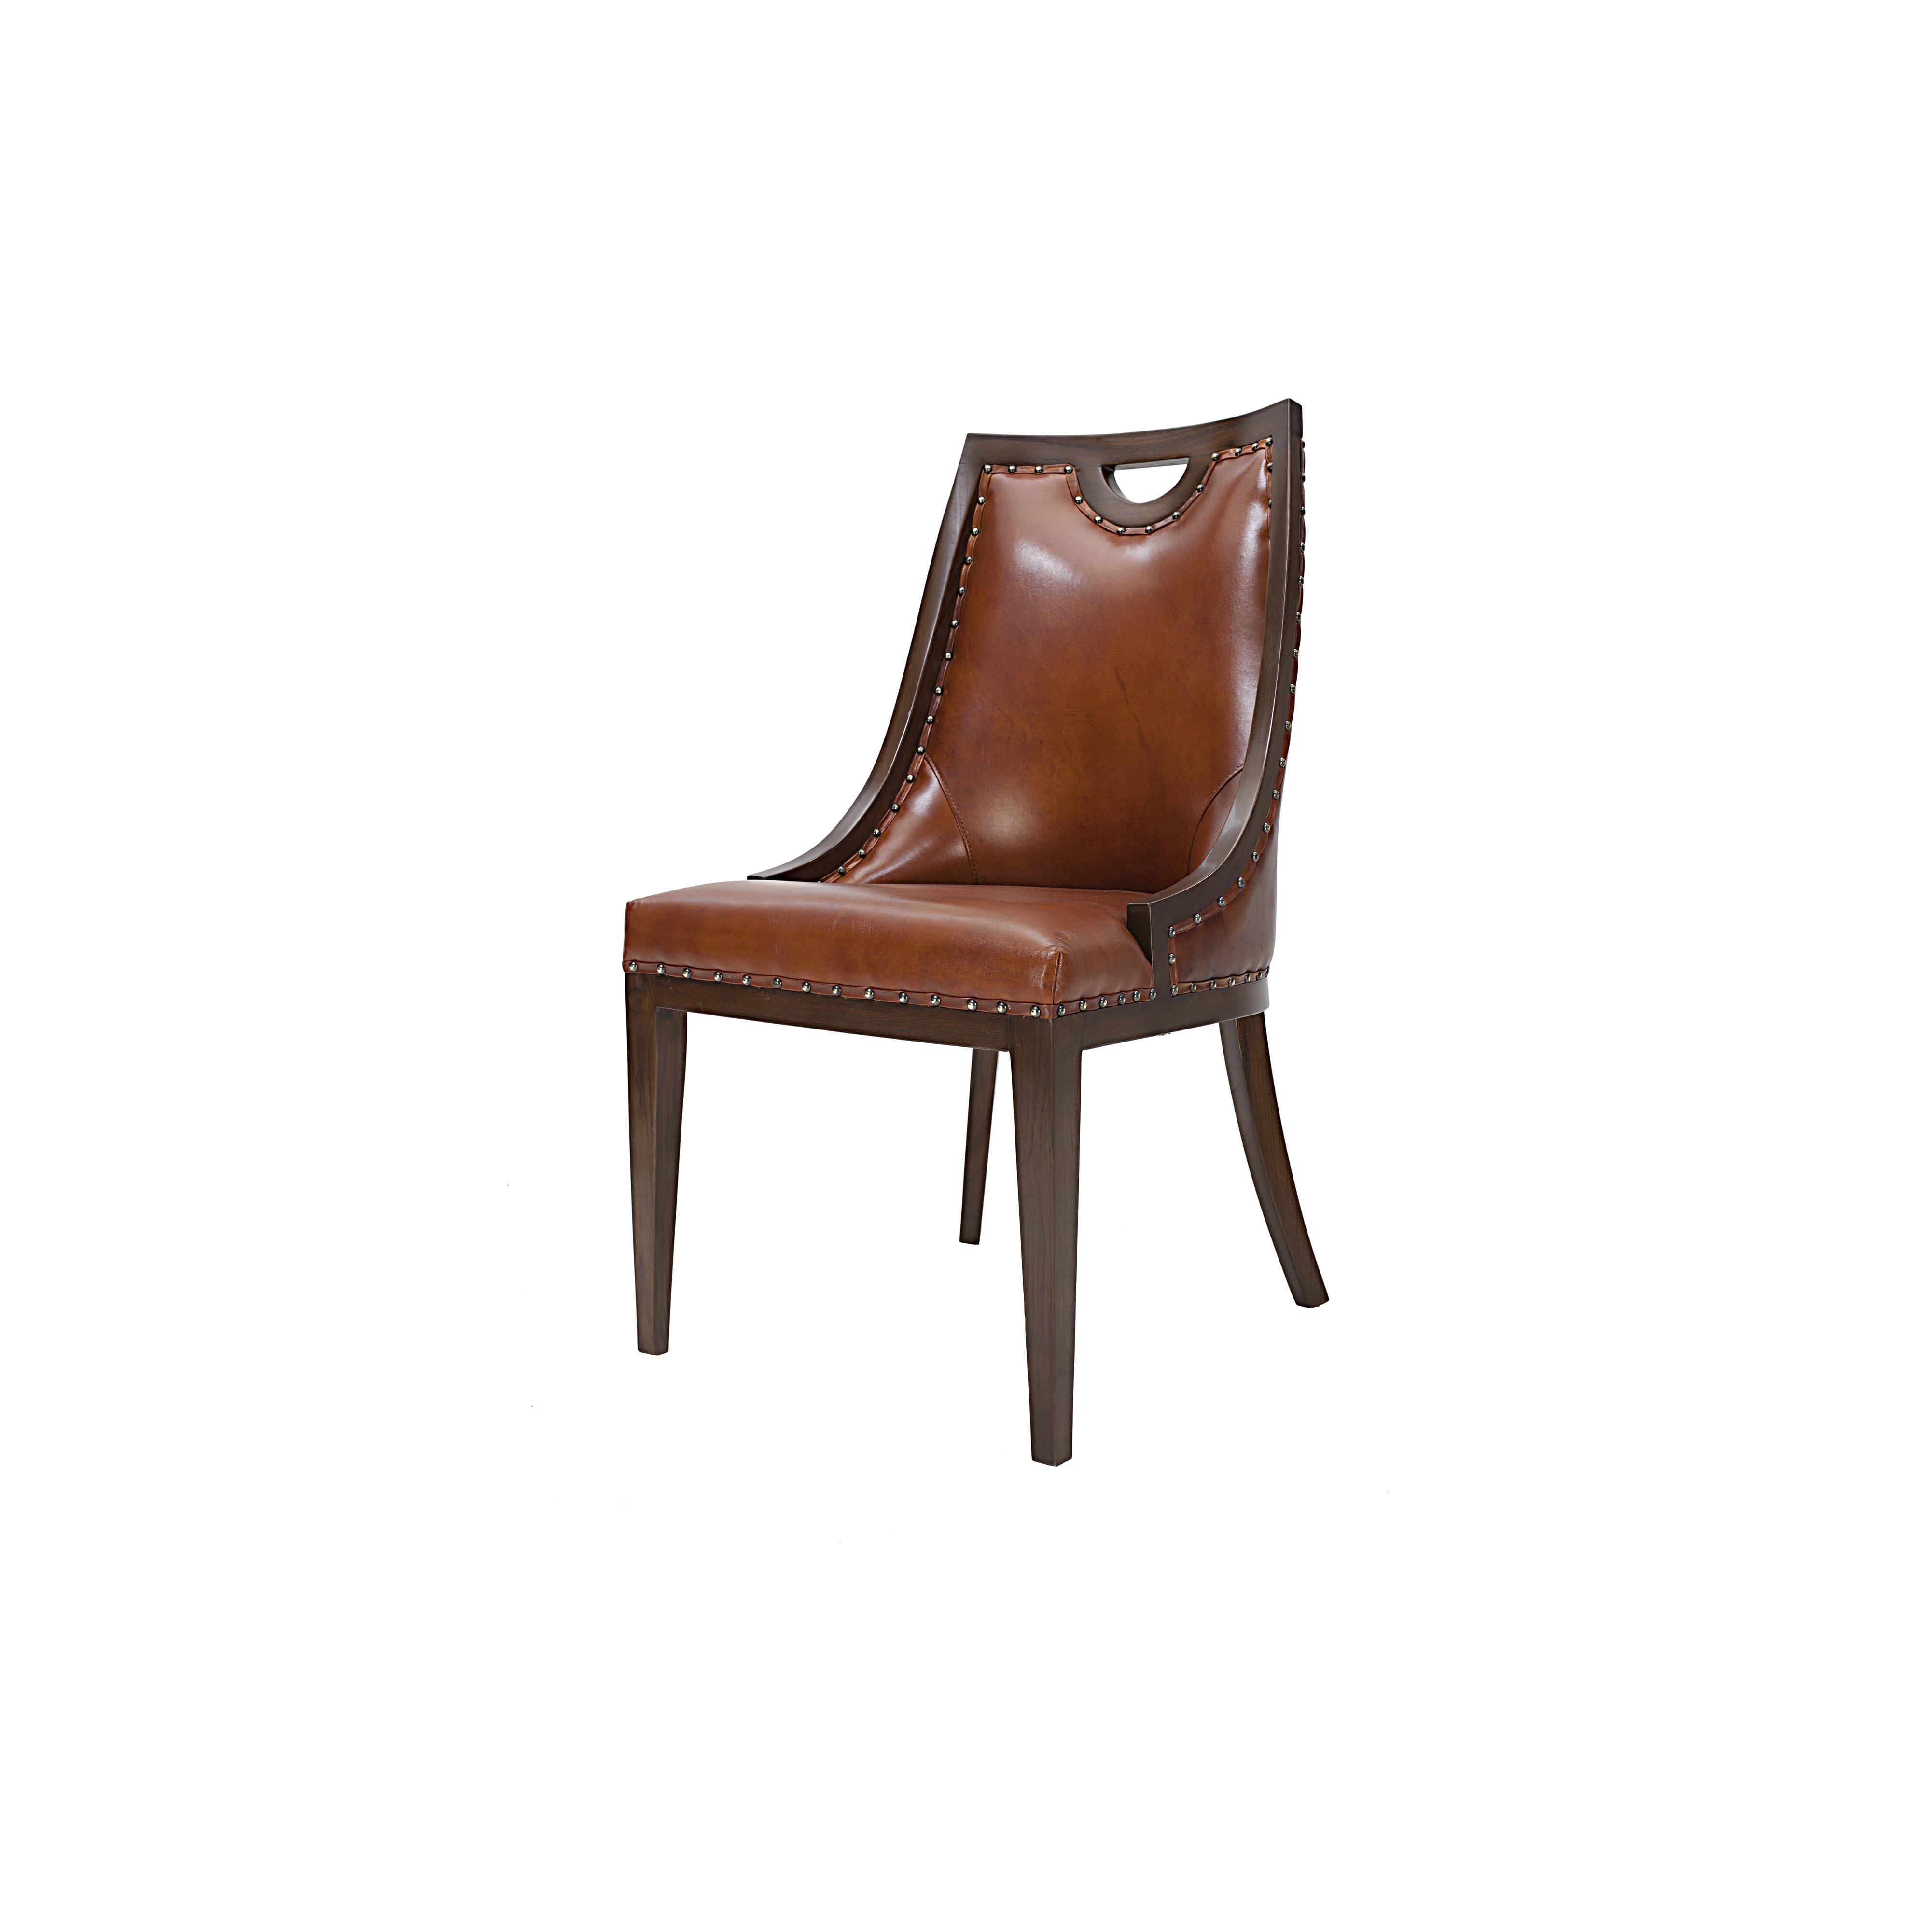 Dione dining chair